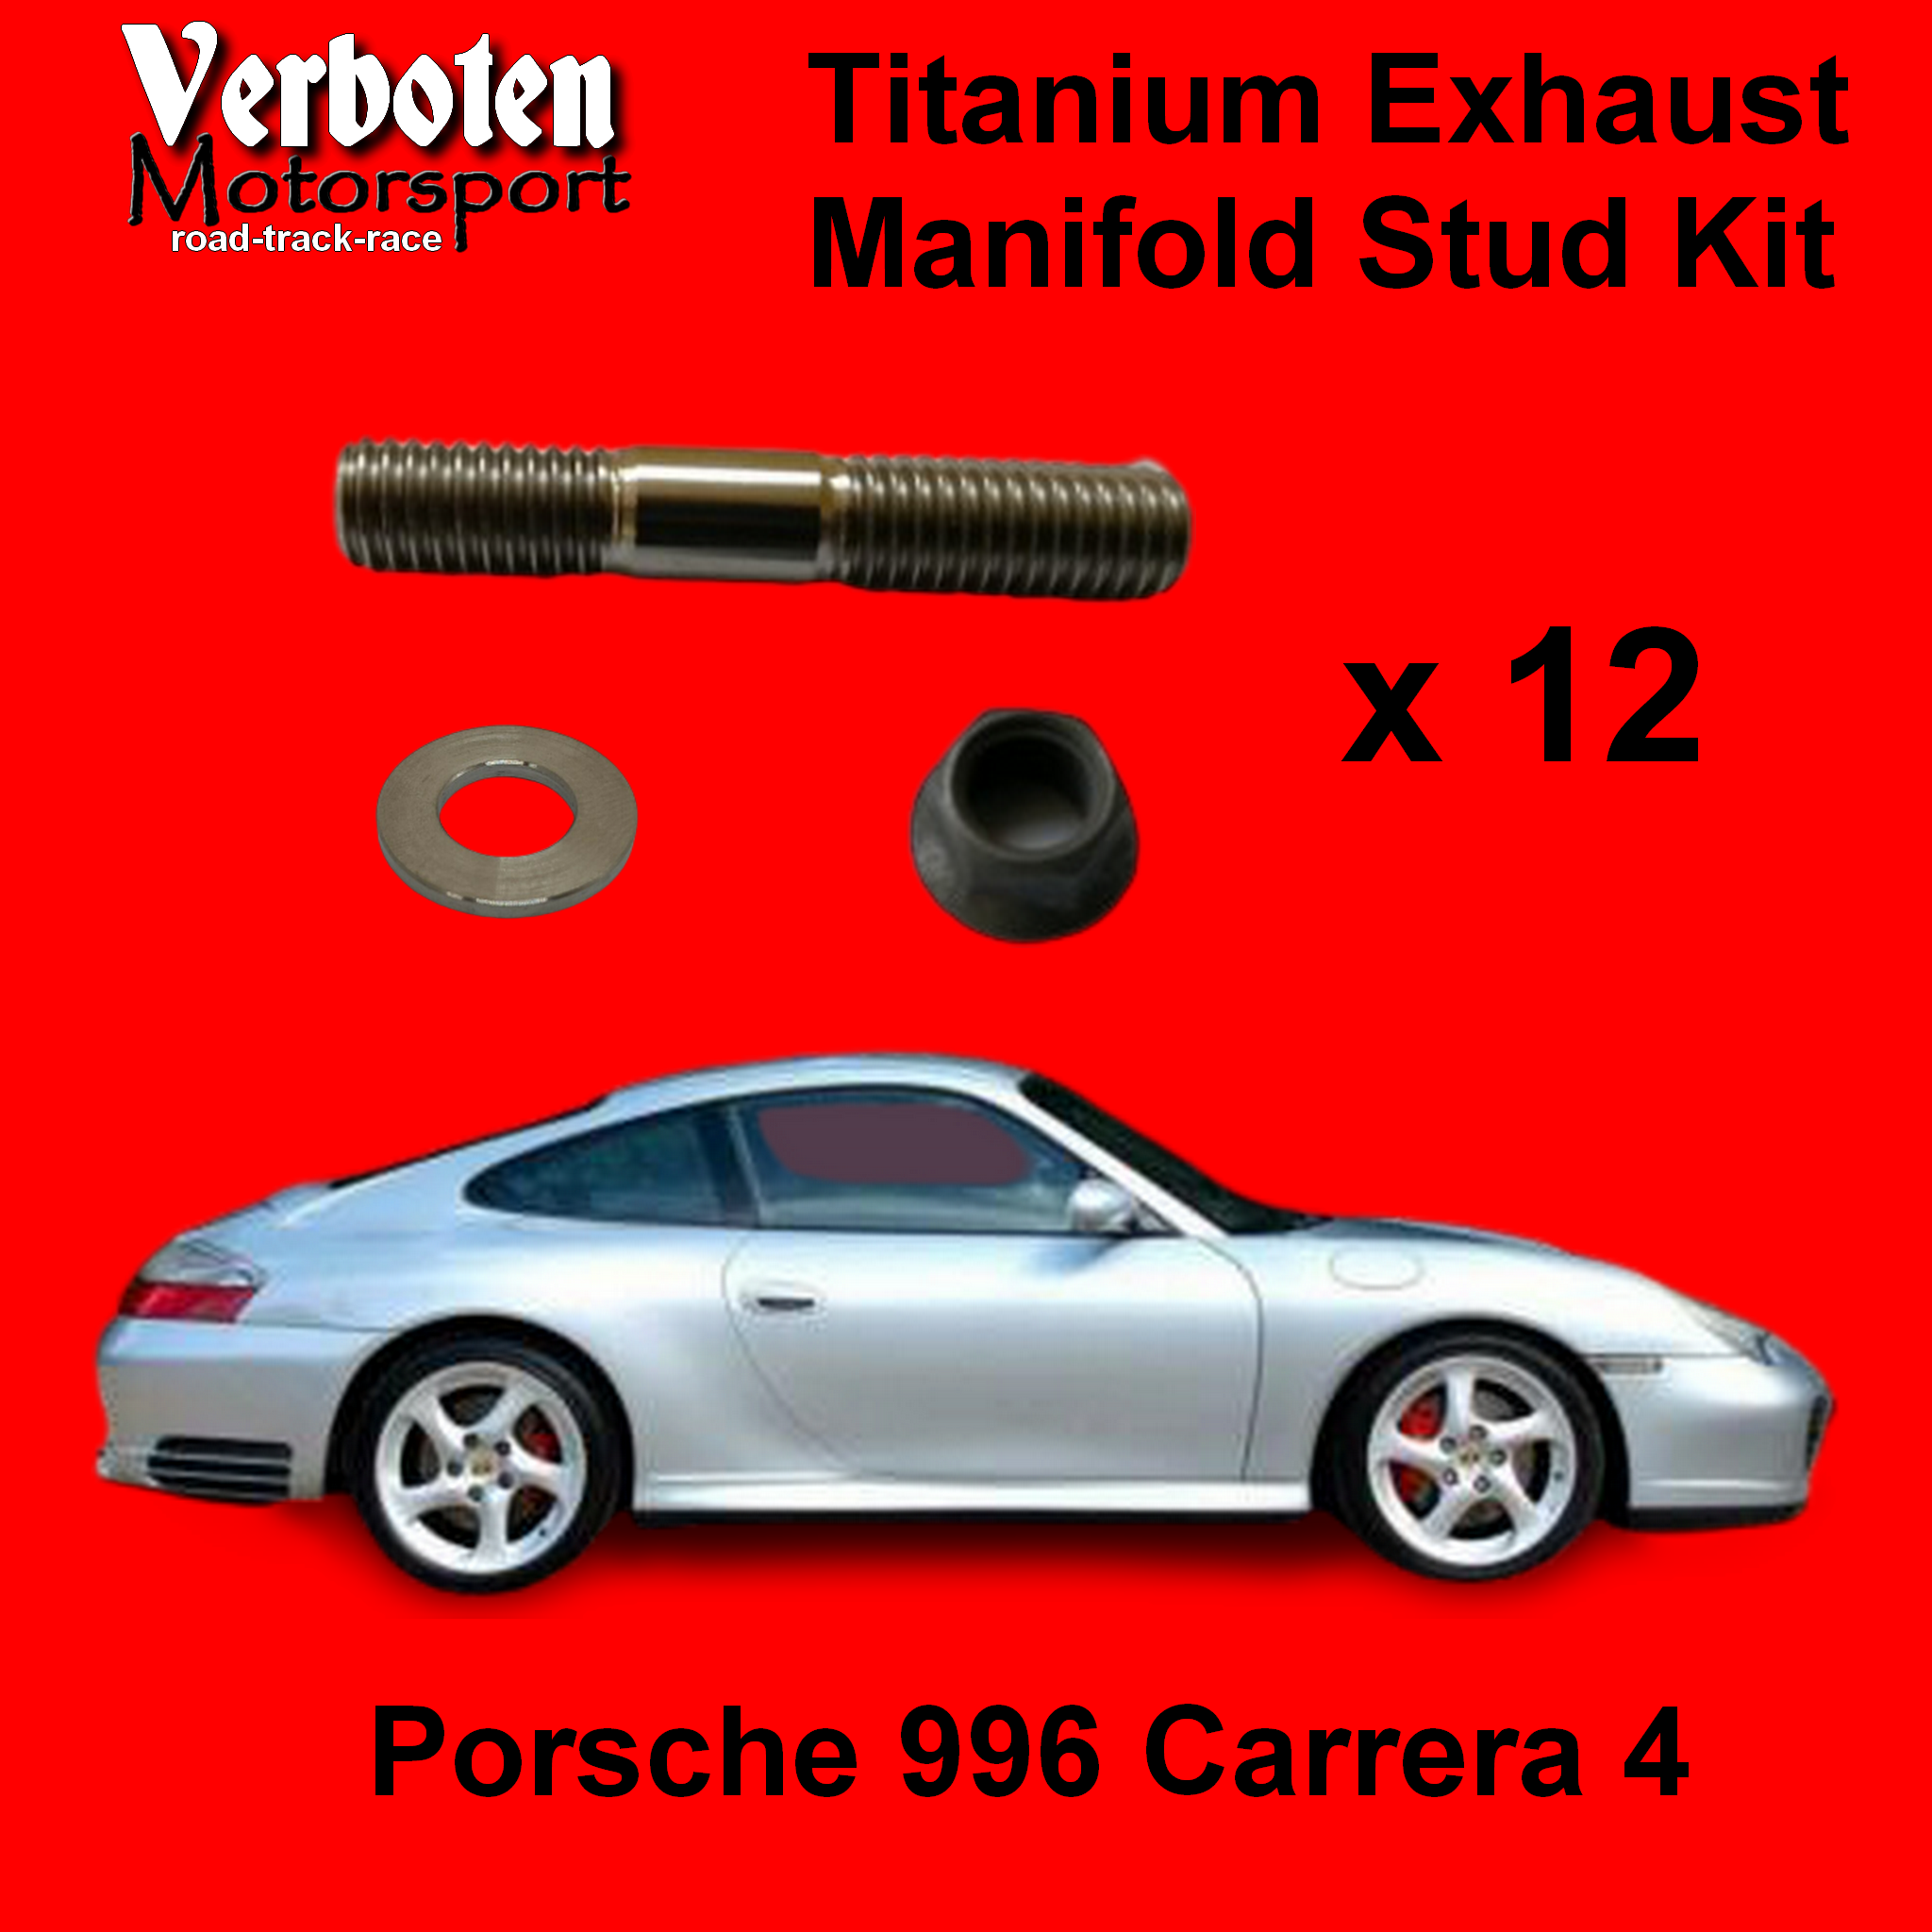 Porsche 996 Titanium Exhaust stud kit